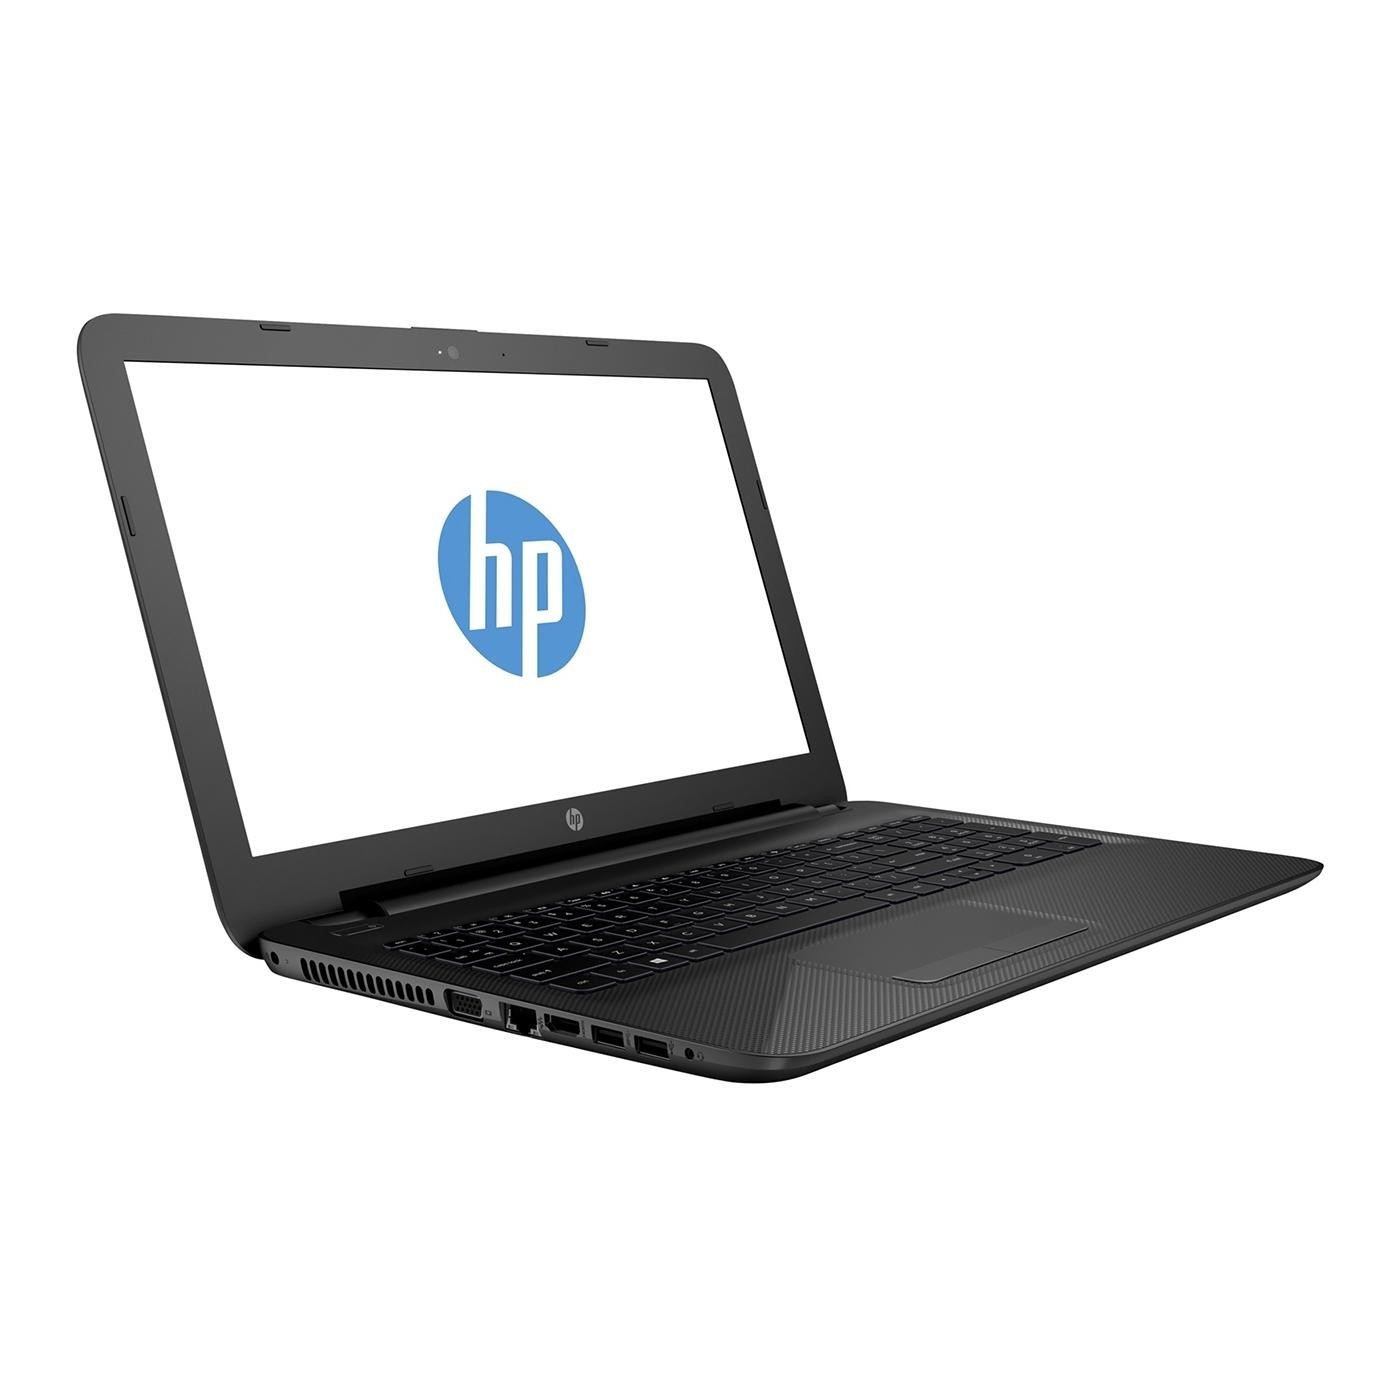 "Ноутбук HP 15-ac170ur 15.6"" i3-5005U/4/1000/WEBCAM/1366 х 768 (P3M83EA), Чорний"